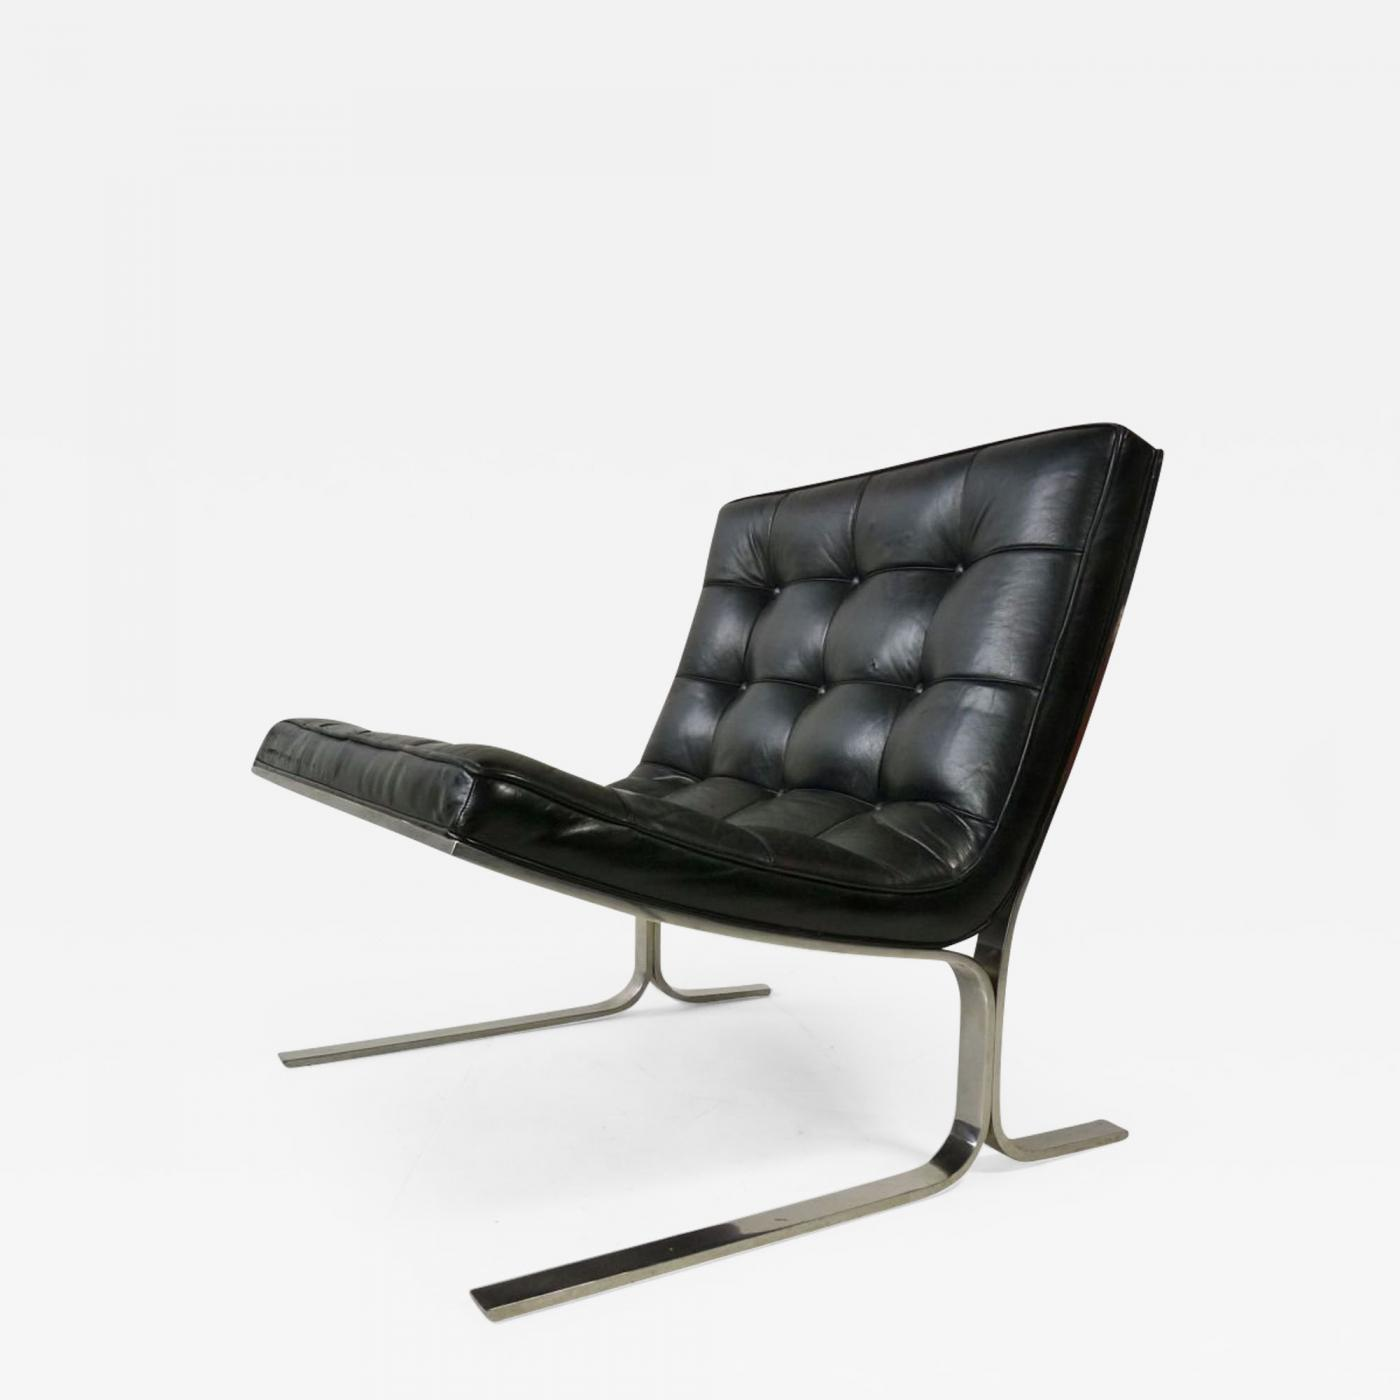 Black Leather Lounge Chair Nicos Zographos Nicos Zographos Black Leather Lounge Chair